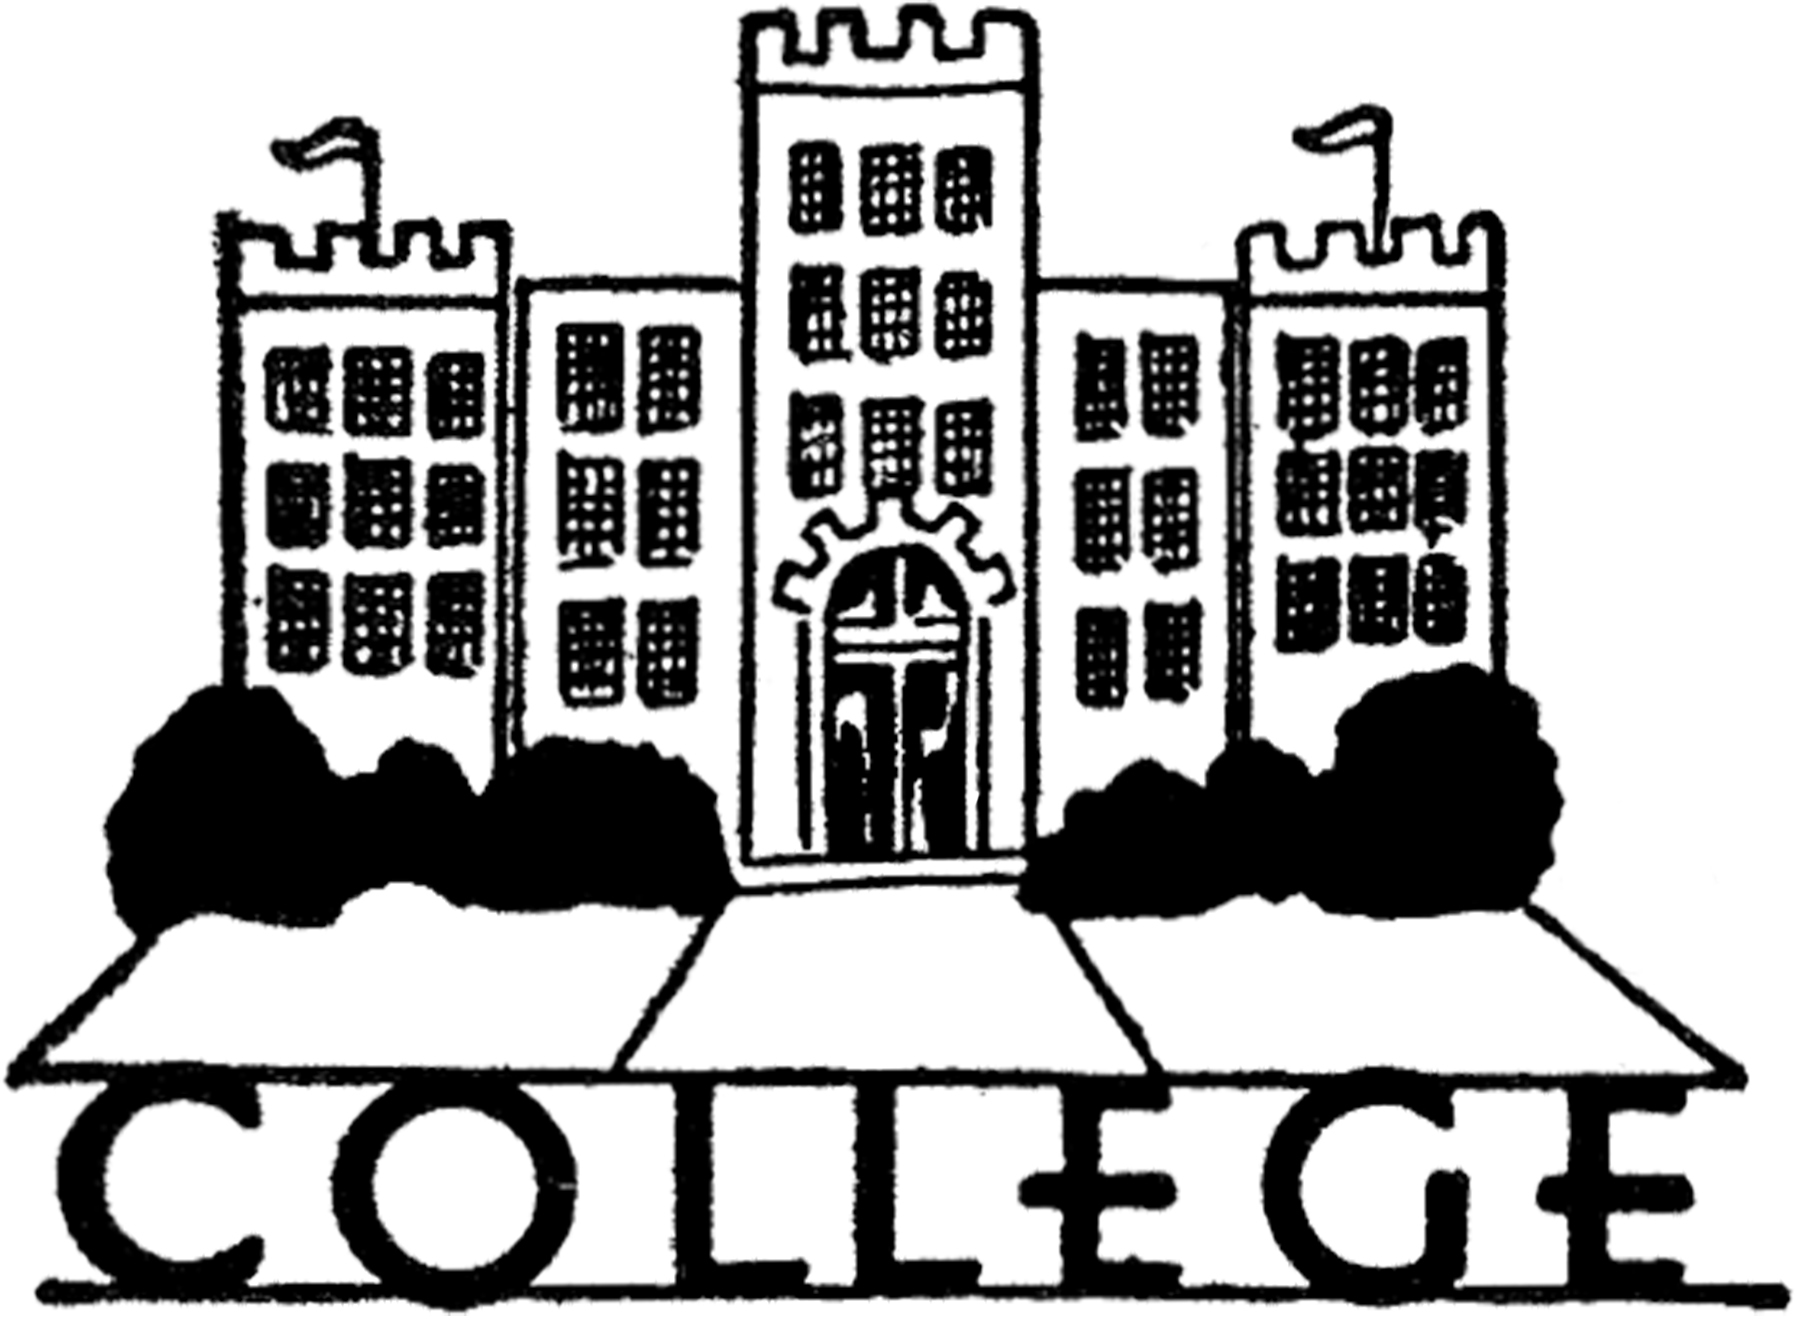 College clip art images illustrations photos 3.